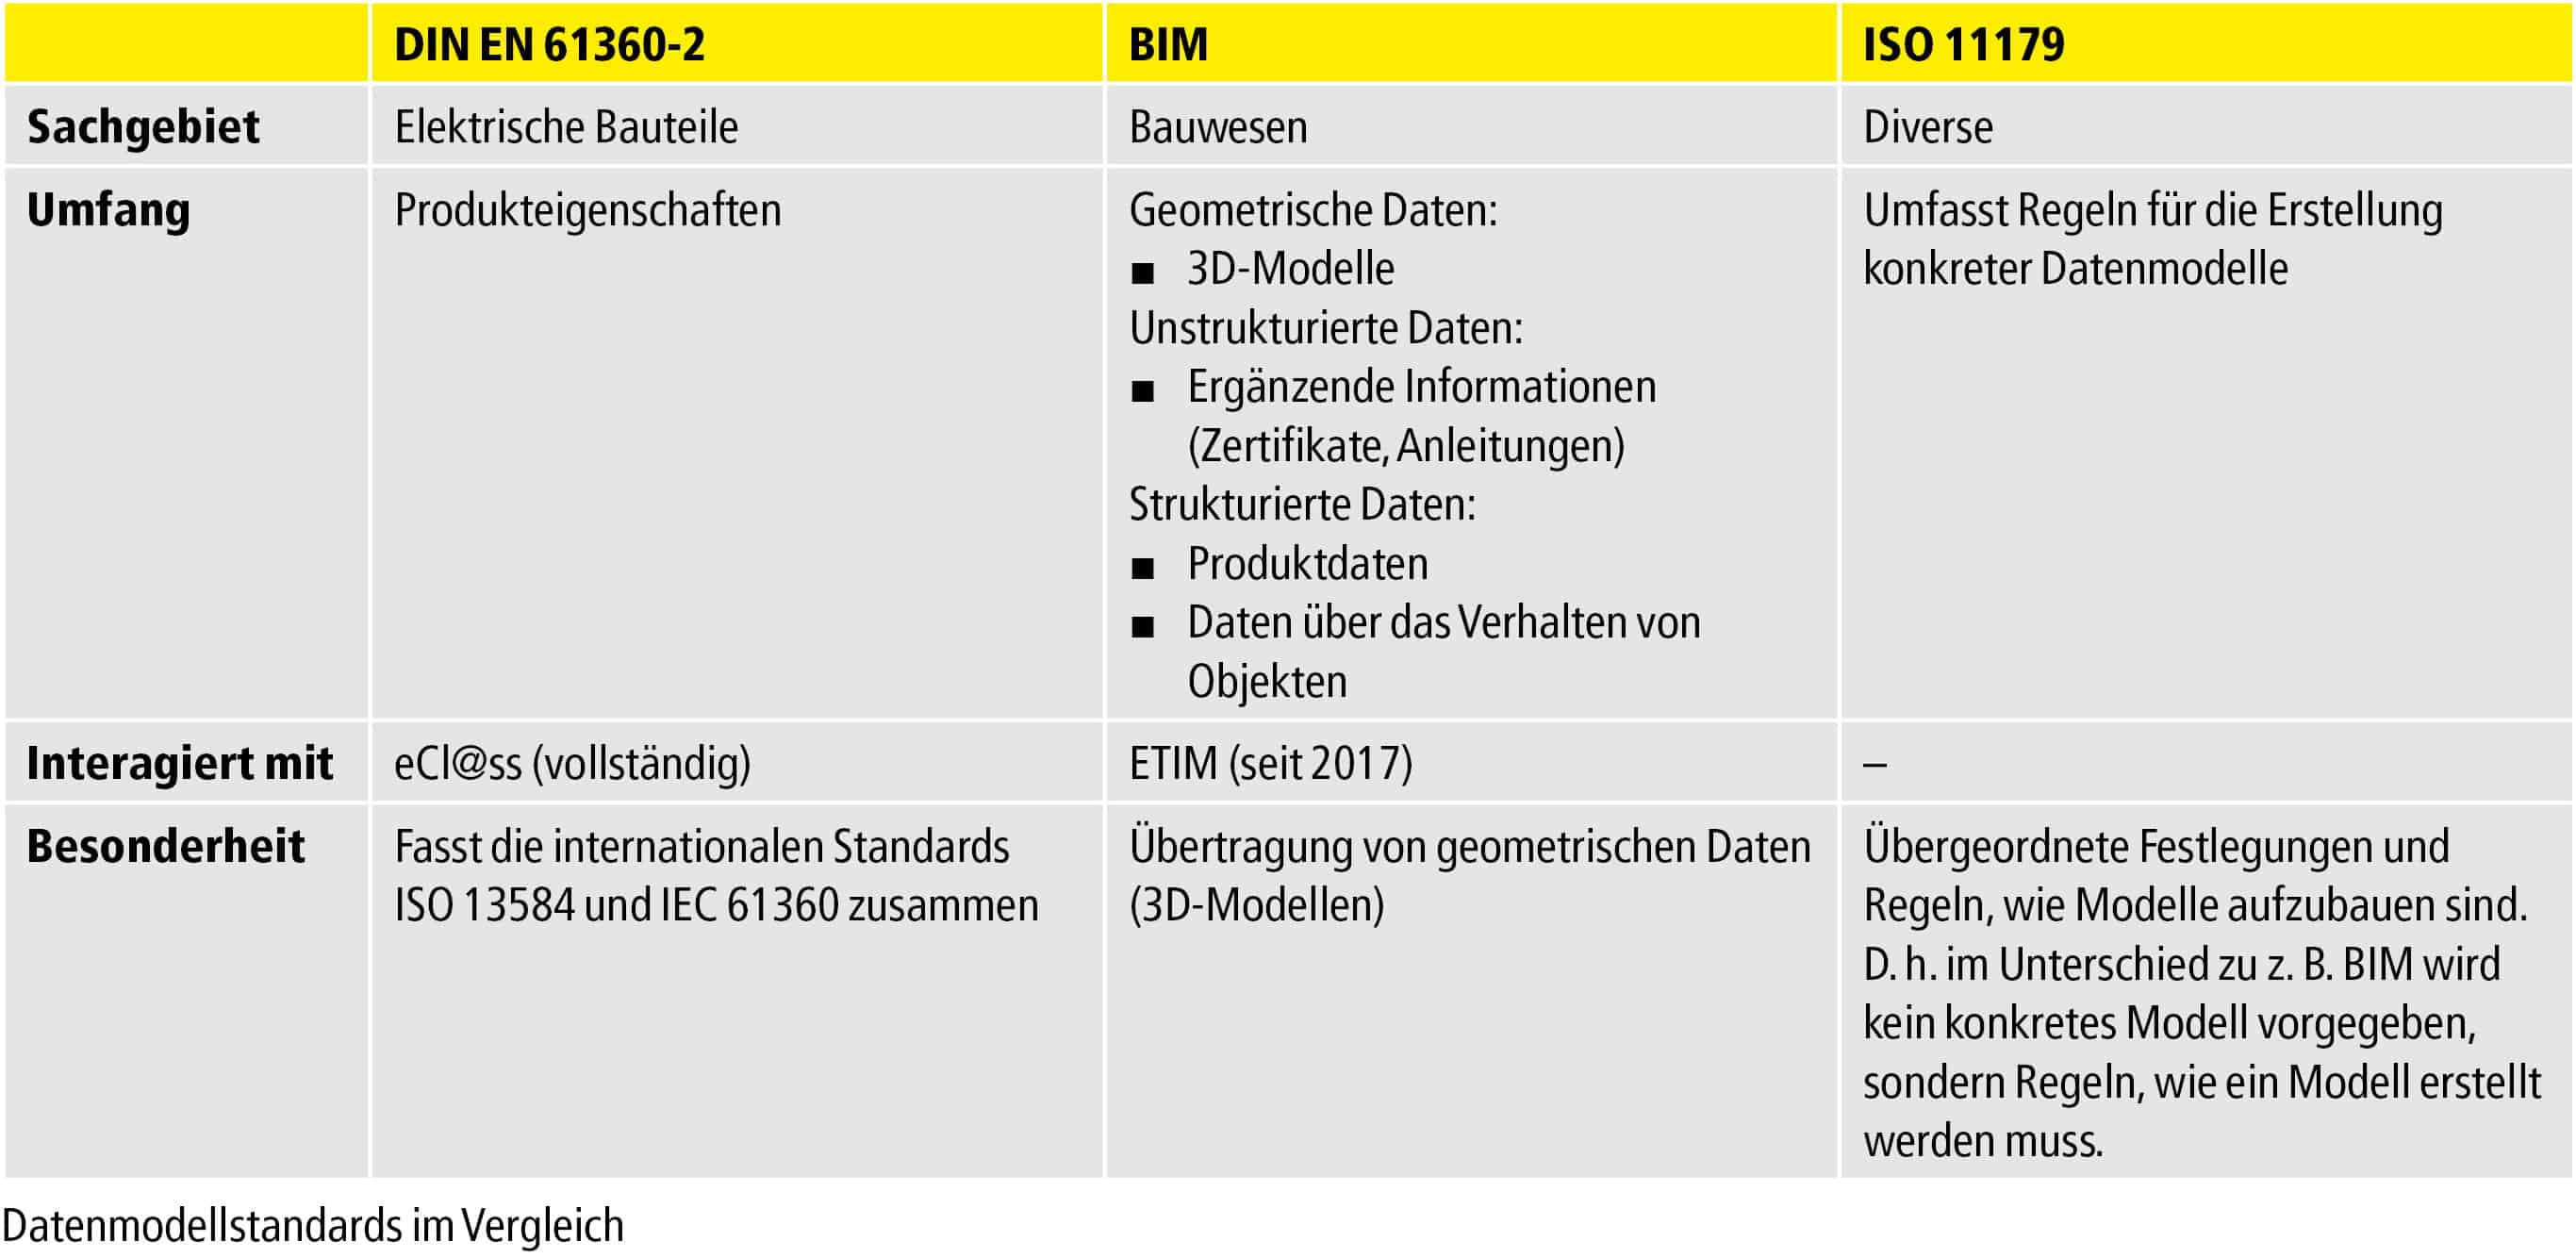 Tabelle Datenmodell Standards im Ueberblick